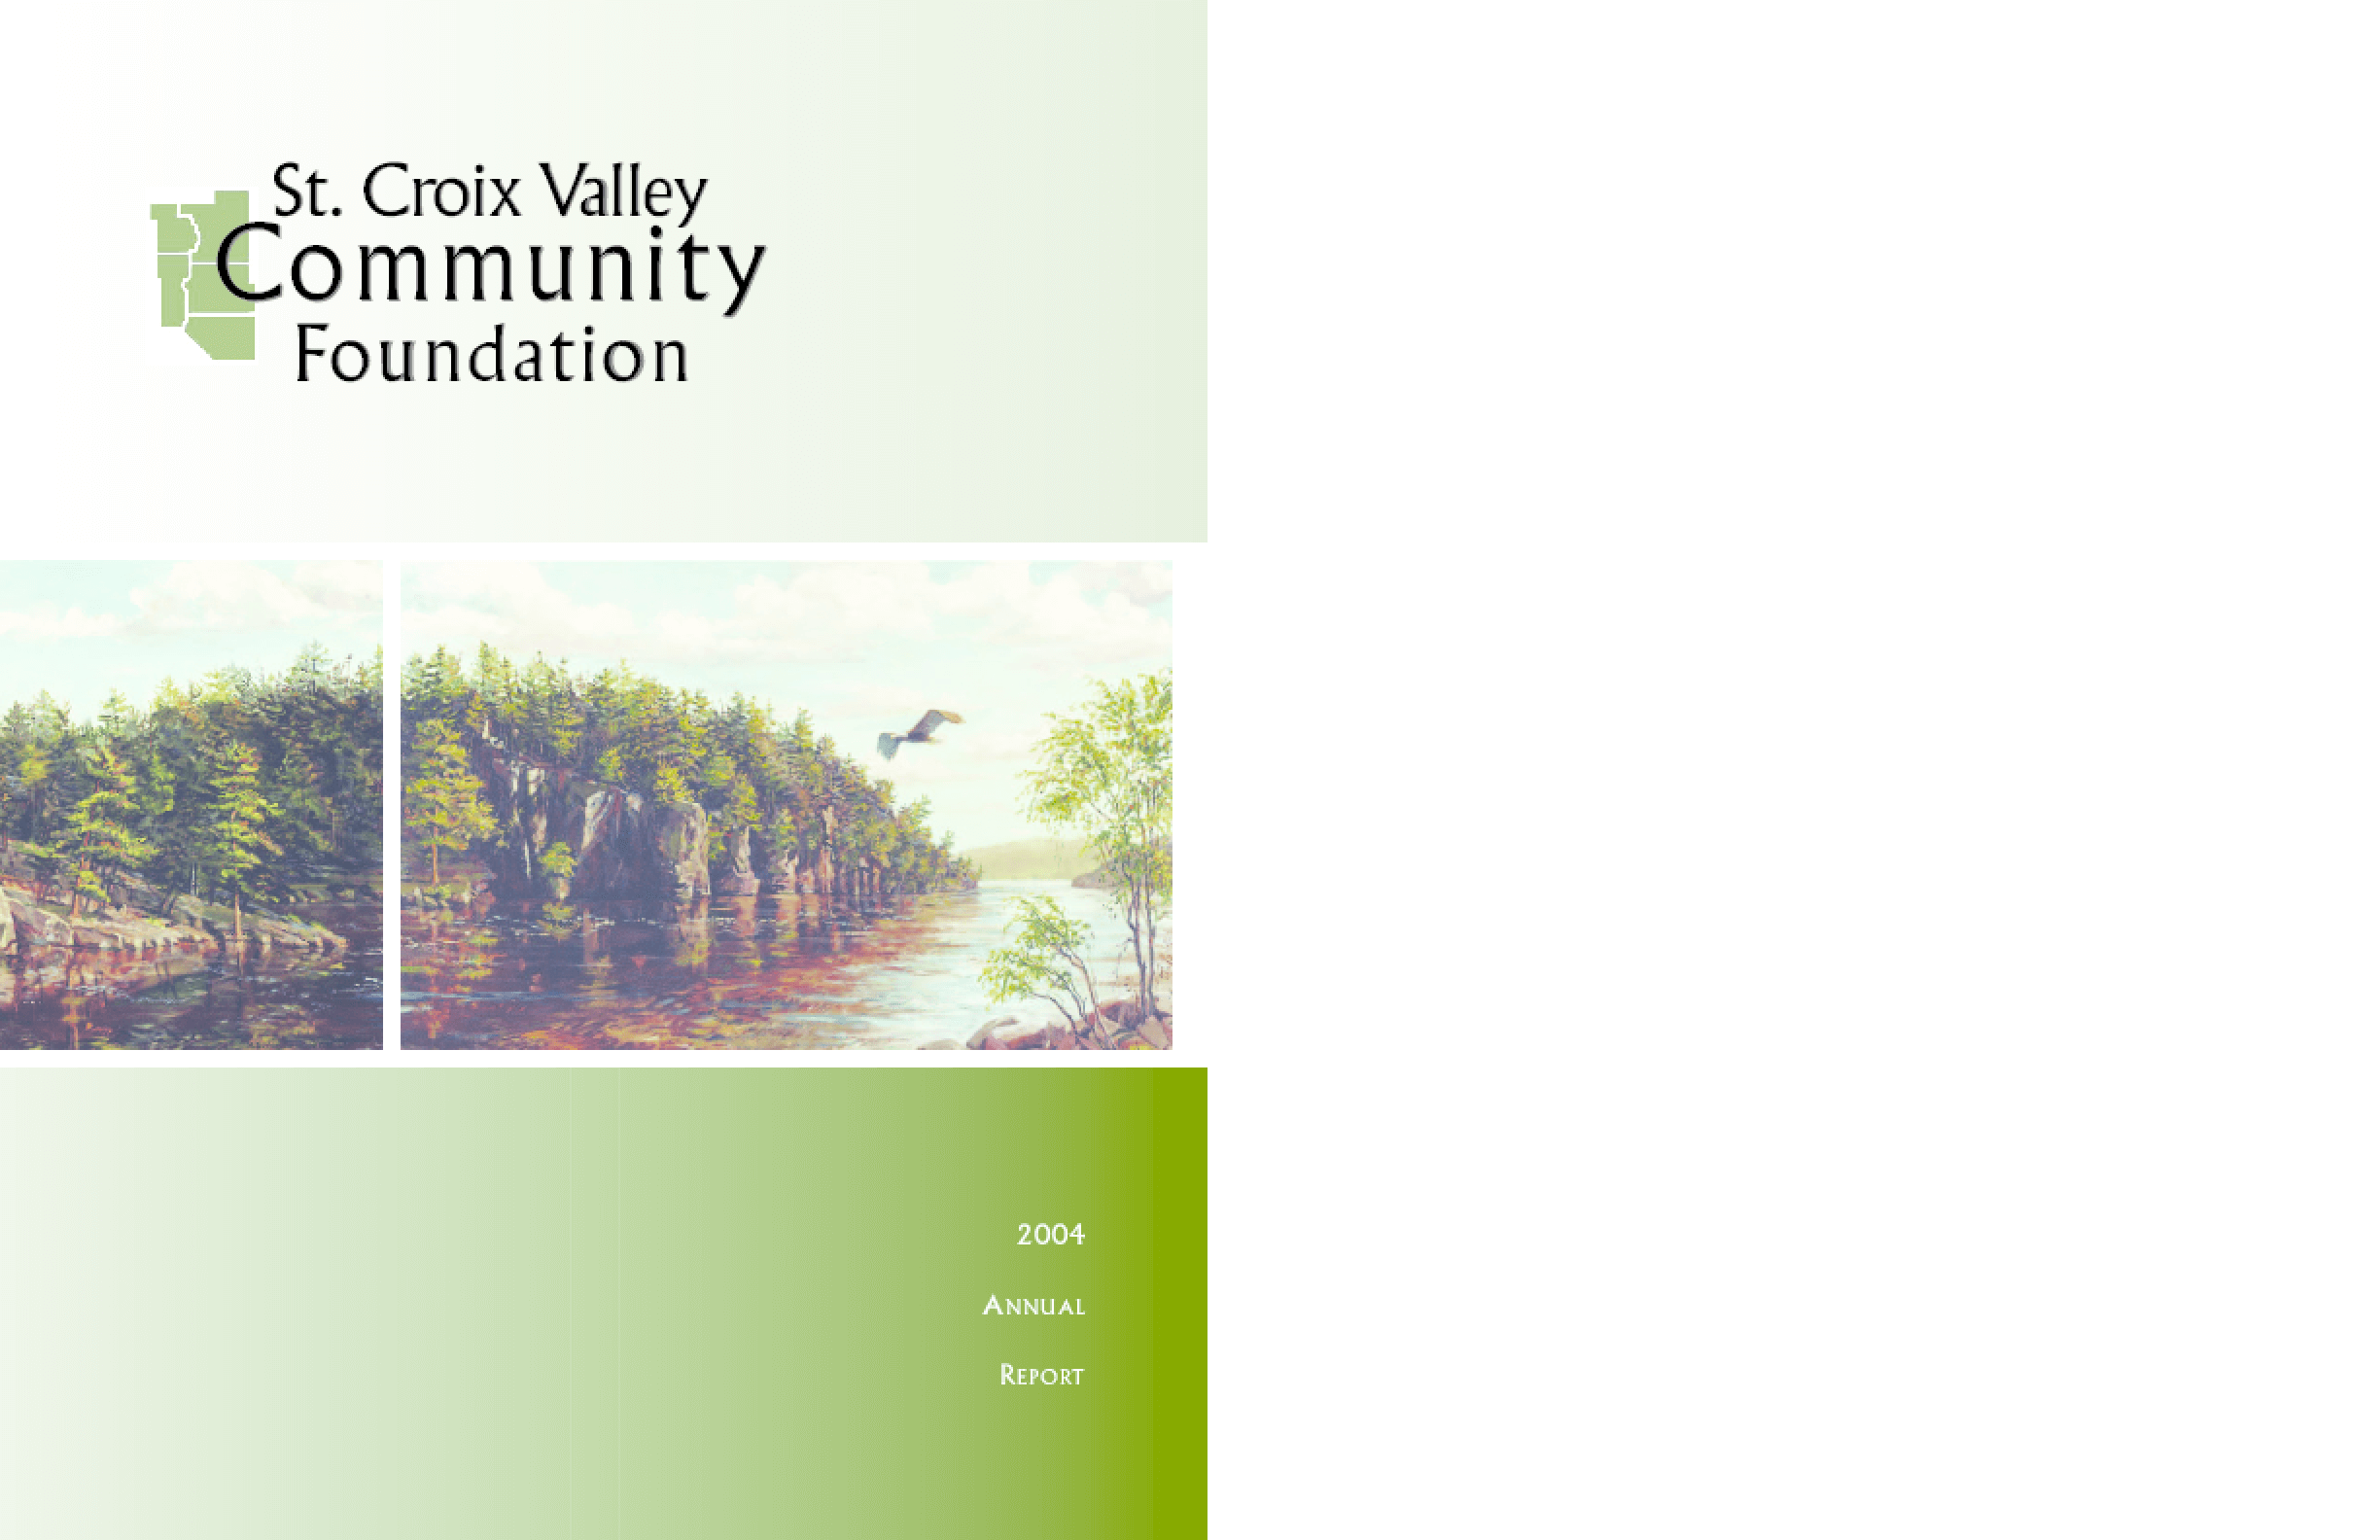 St. Croix Valley Community Foundation - 2004 Annual Report